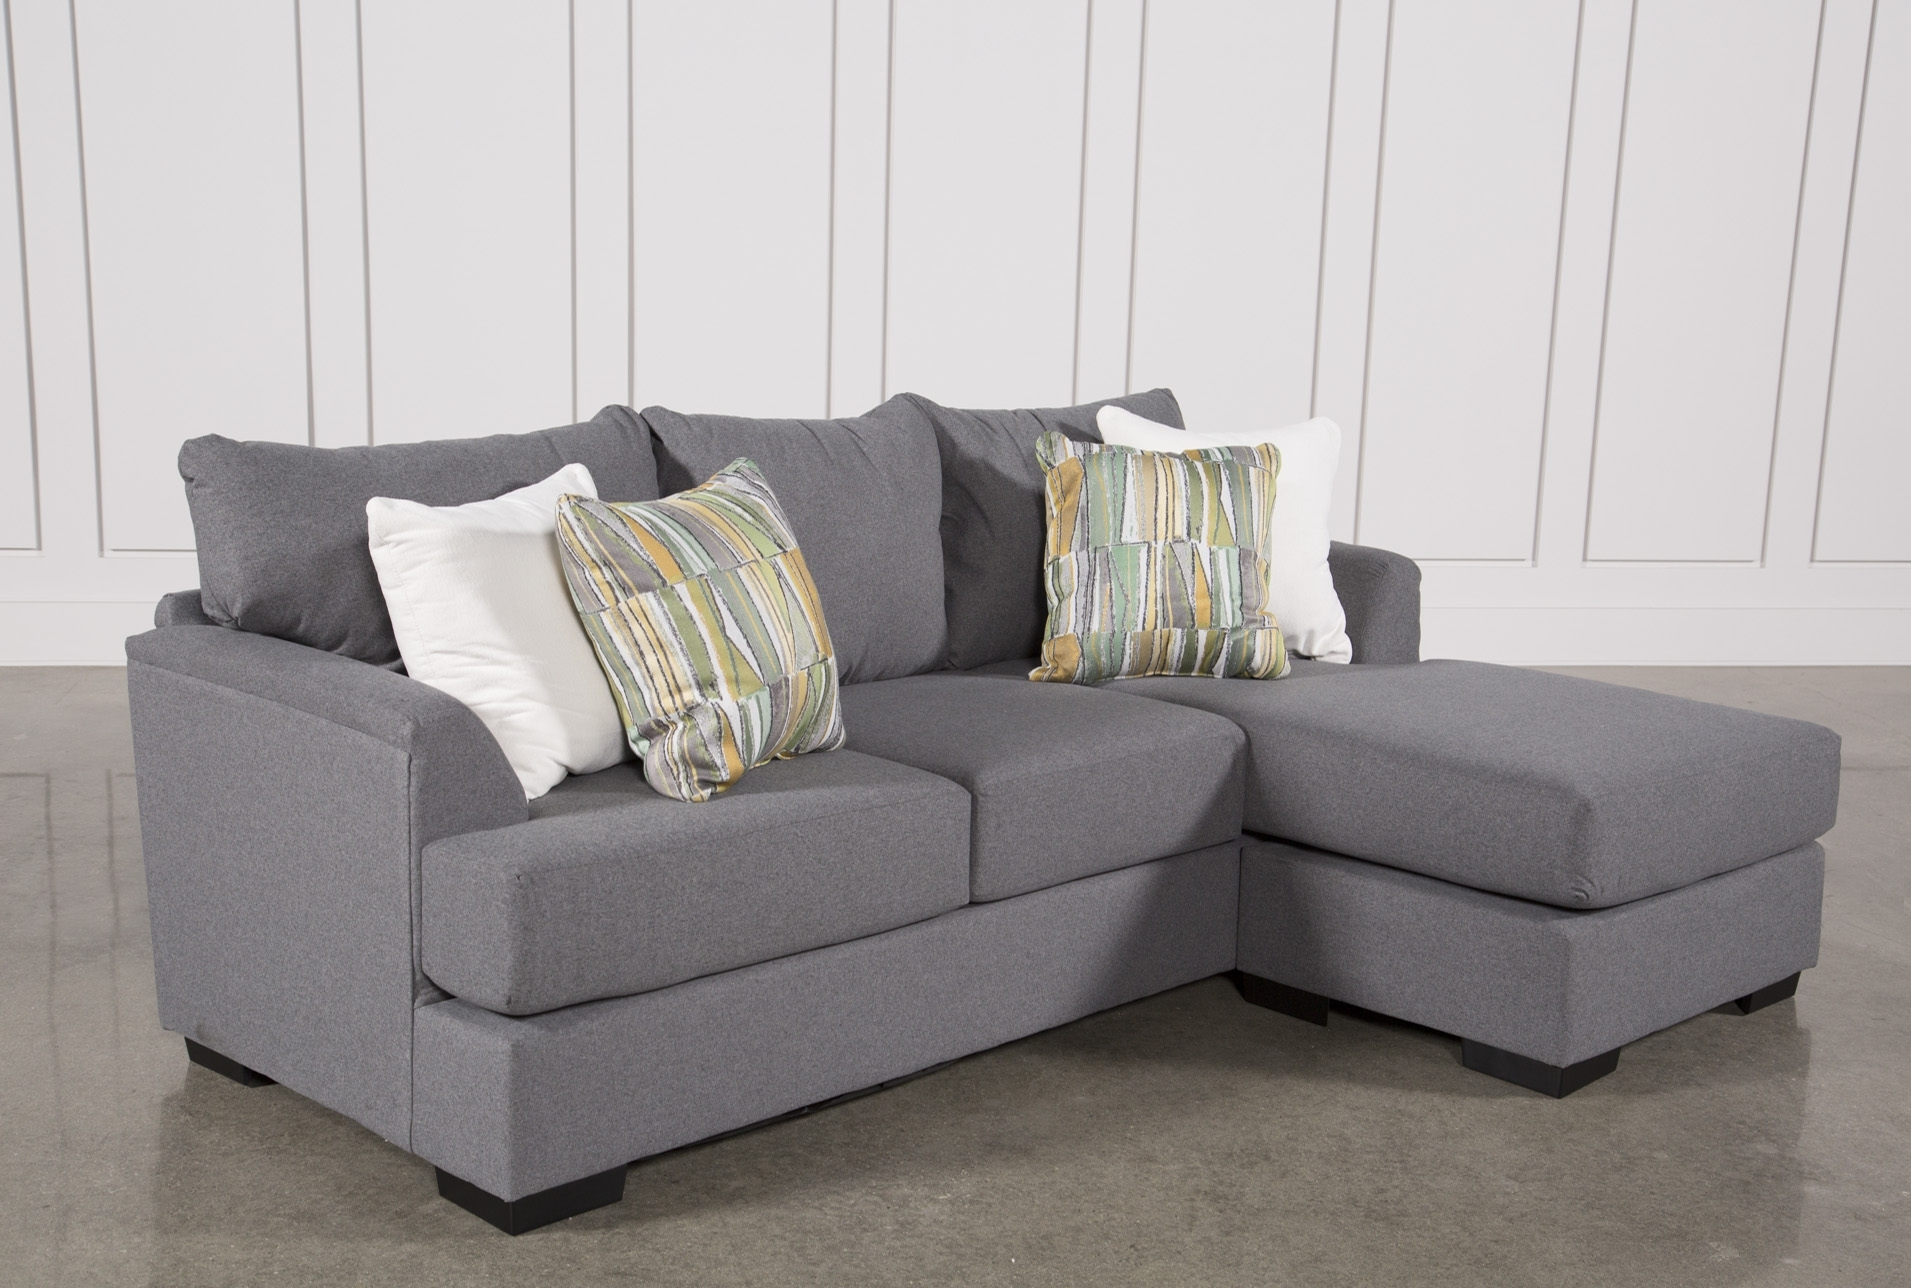 Keegan Sofa W/reversible Chaise | Products | Pinterest | Products For Egan Ii Cement Sofa Sectionals With Reversible Chaise (Image 11 of 25)